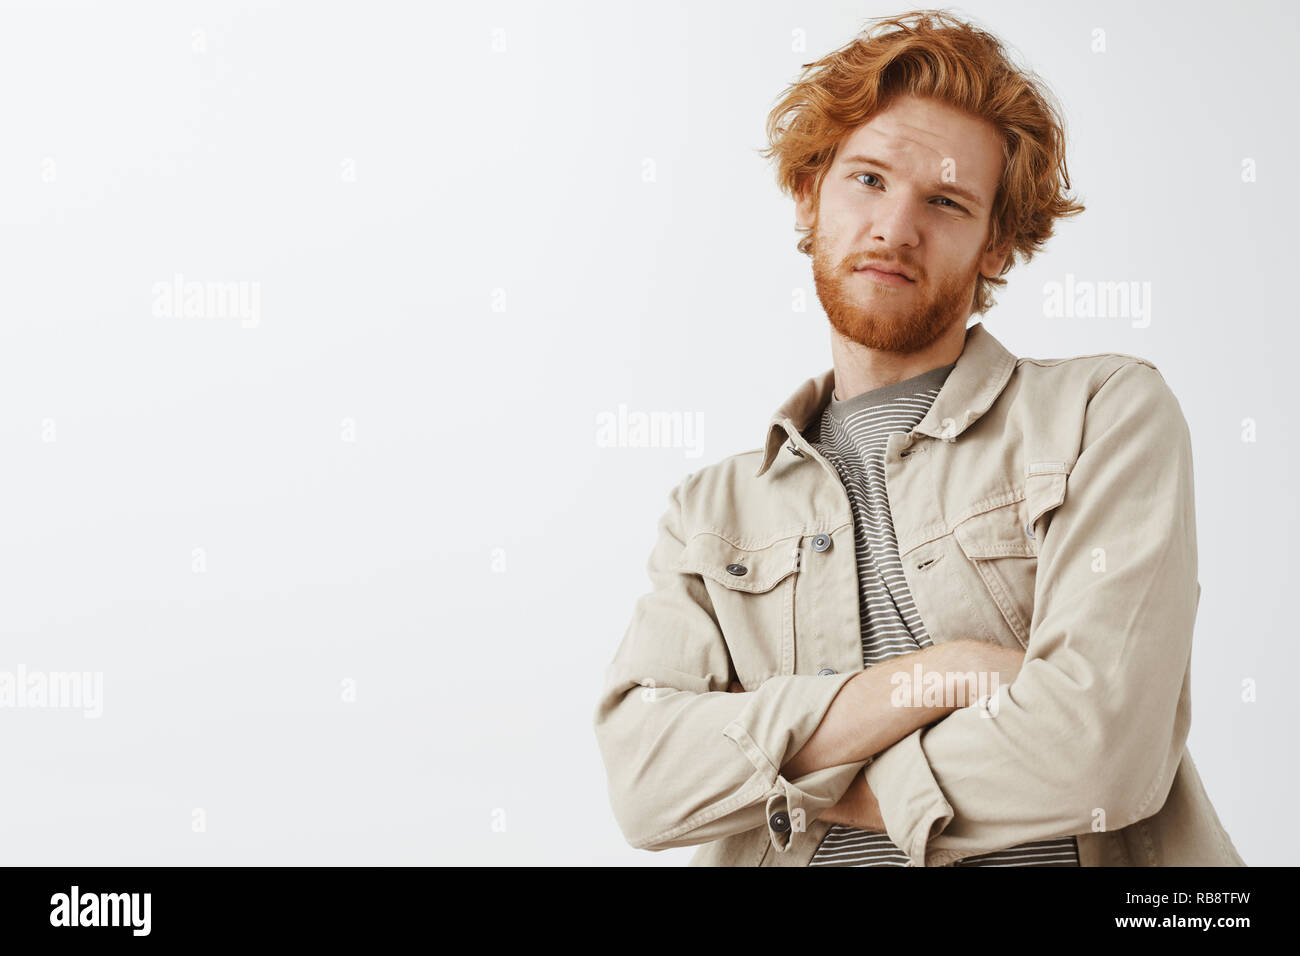 Oh not impressive. Portrait of cool snobbish redhead guy with wavy hair and beard tilting backwards with hands crossed on chest and doubtful unimpressed expression being disappointed - Stock Image